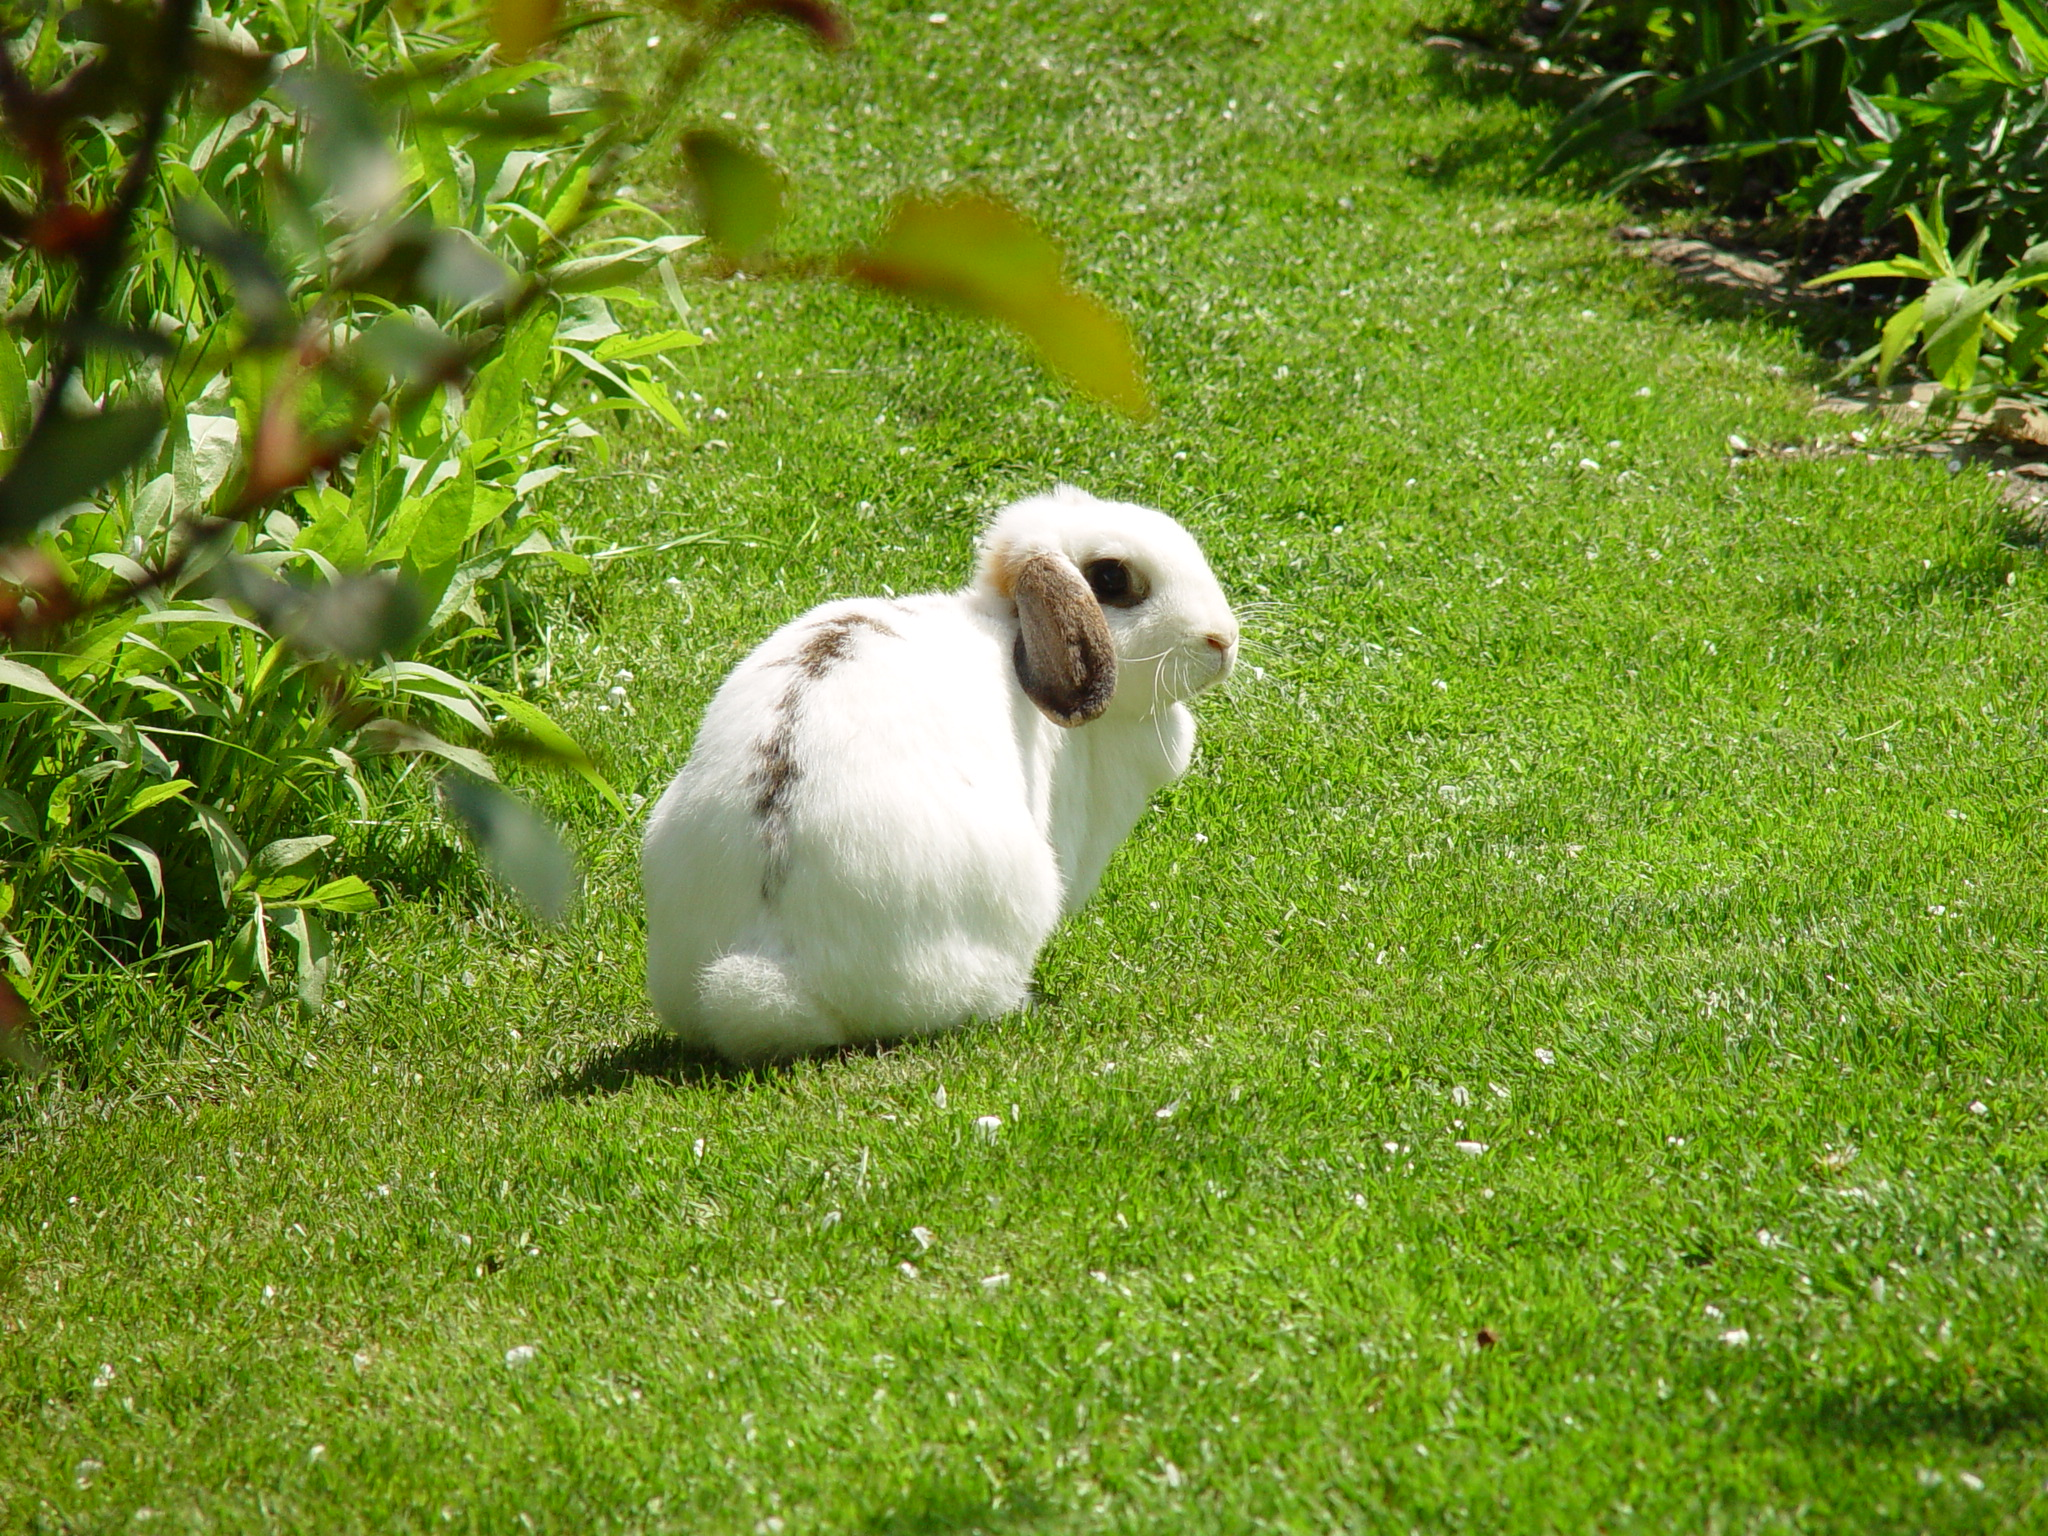 Adventurous Bunnies Explore the Lawn and Tall Grasses 1